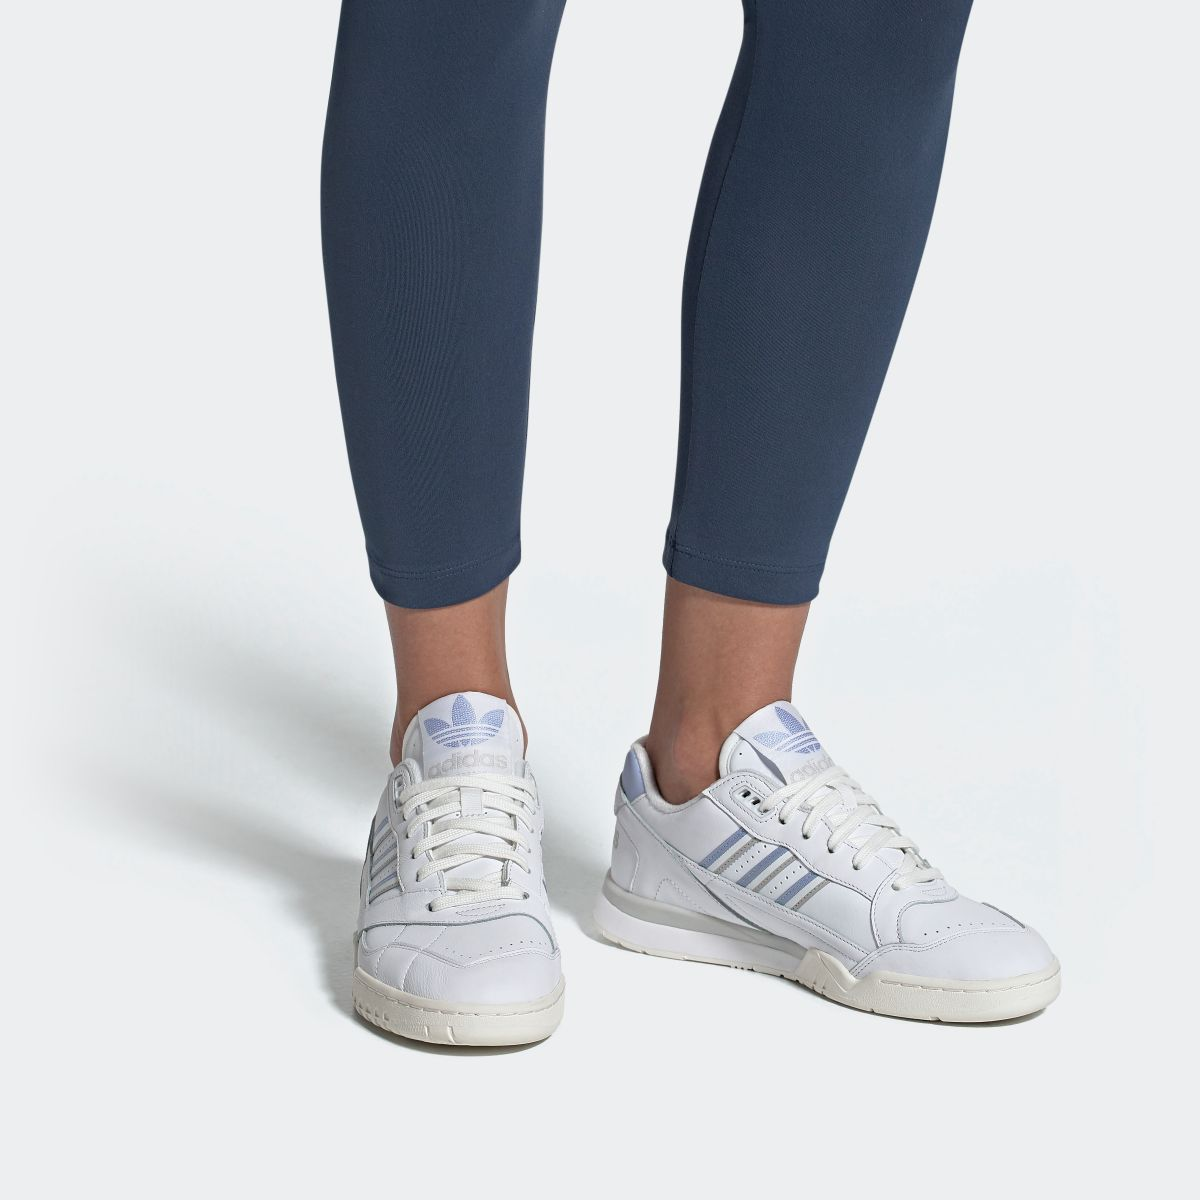 Adidas adidas A.R. Trainer W A.R. TRAINER W Lady's men originals shoes sneakers G27715 point_adidasday